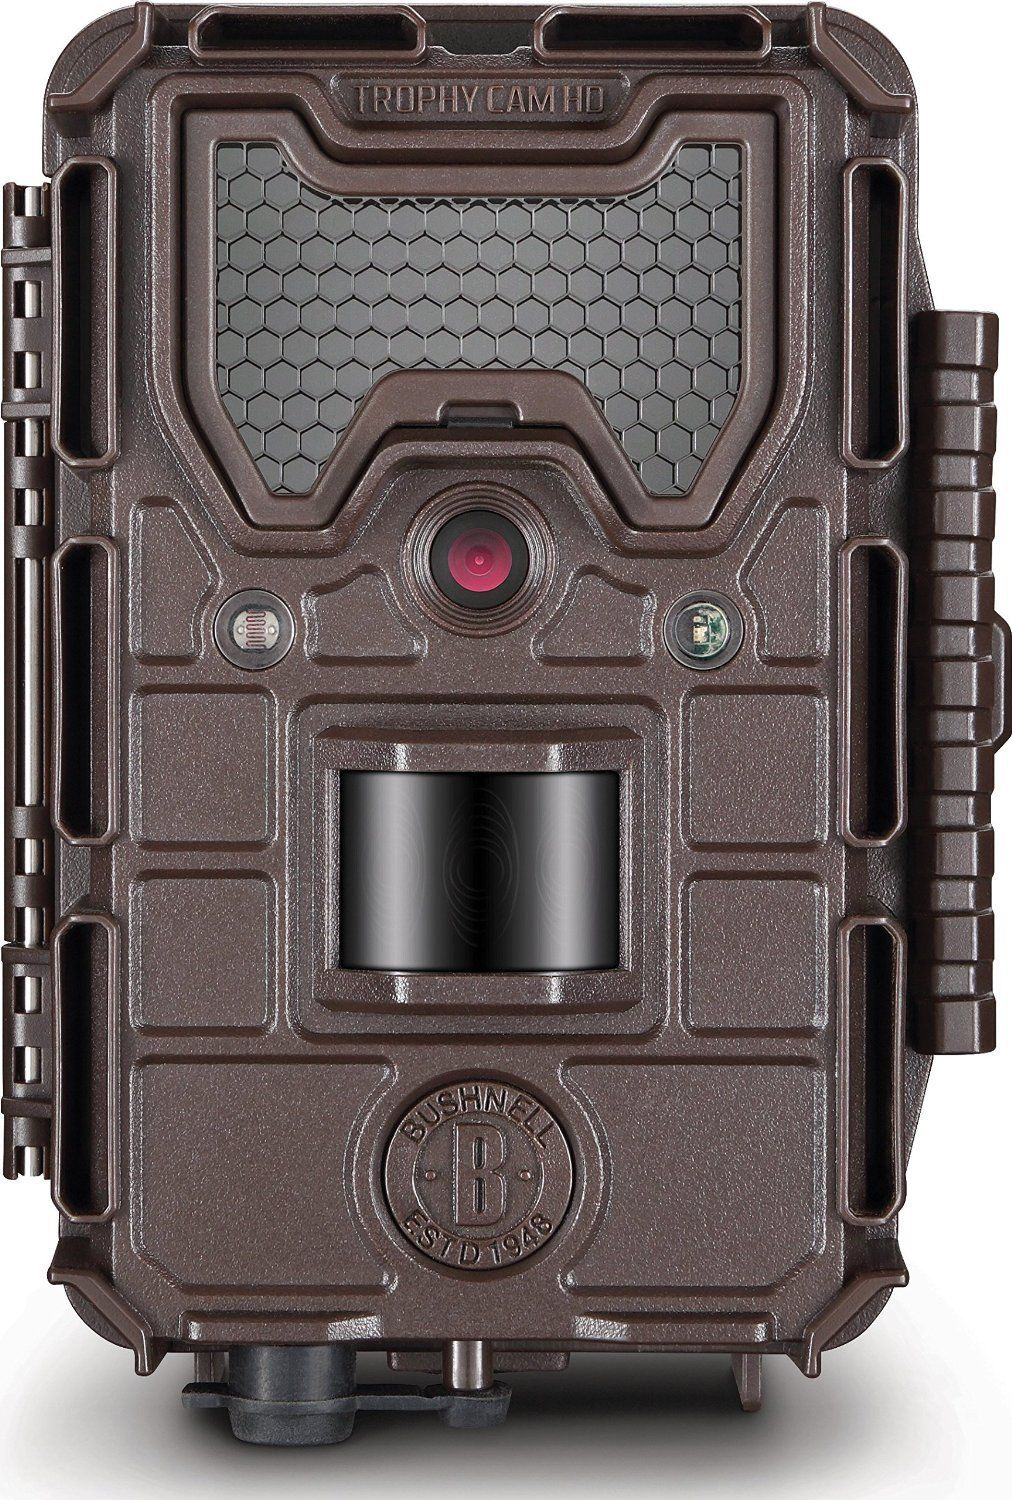 Bushnell 119776 Infrared HD Wildlife Trophy Cam Trail Camera Black No-Glow LED